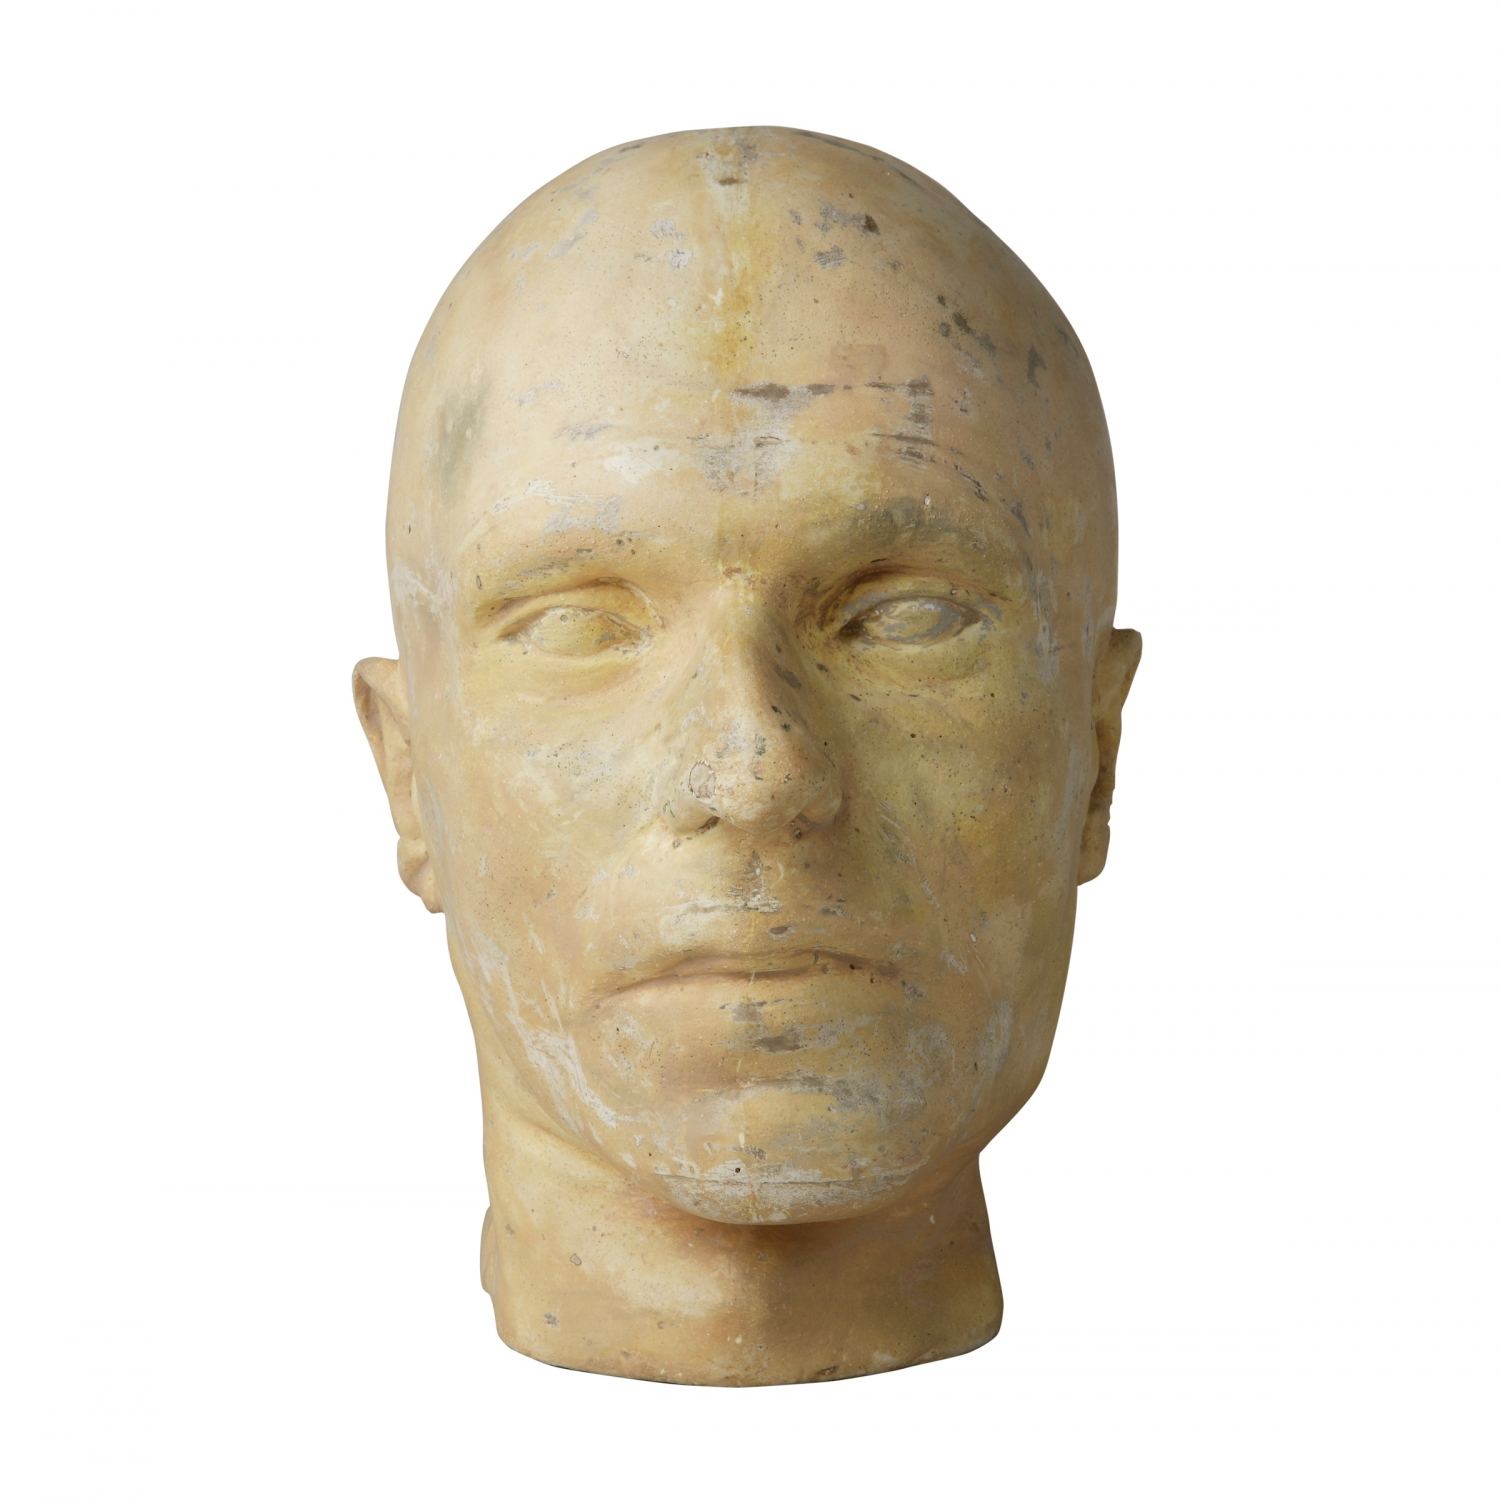 Cast of man's head with no hair.